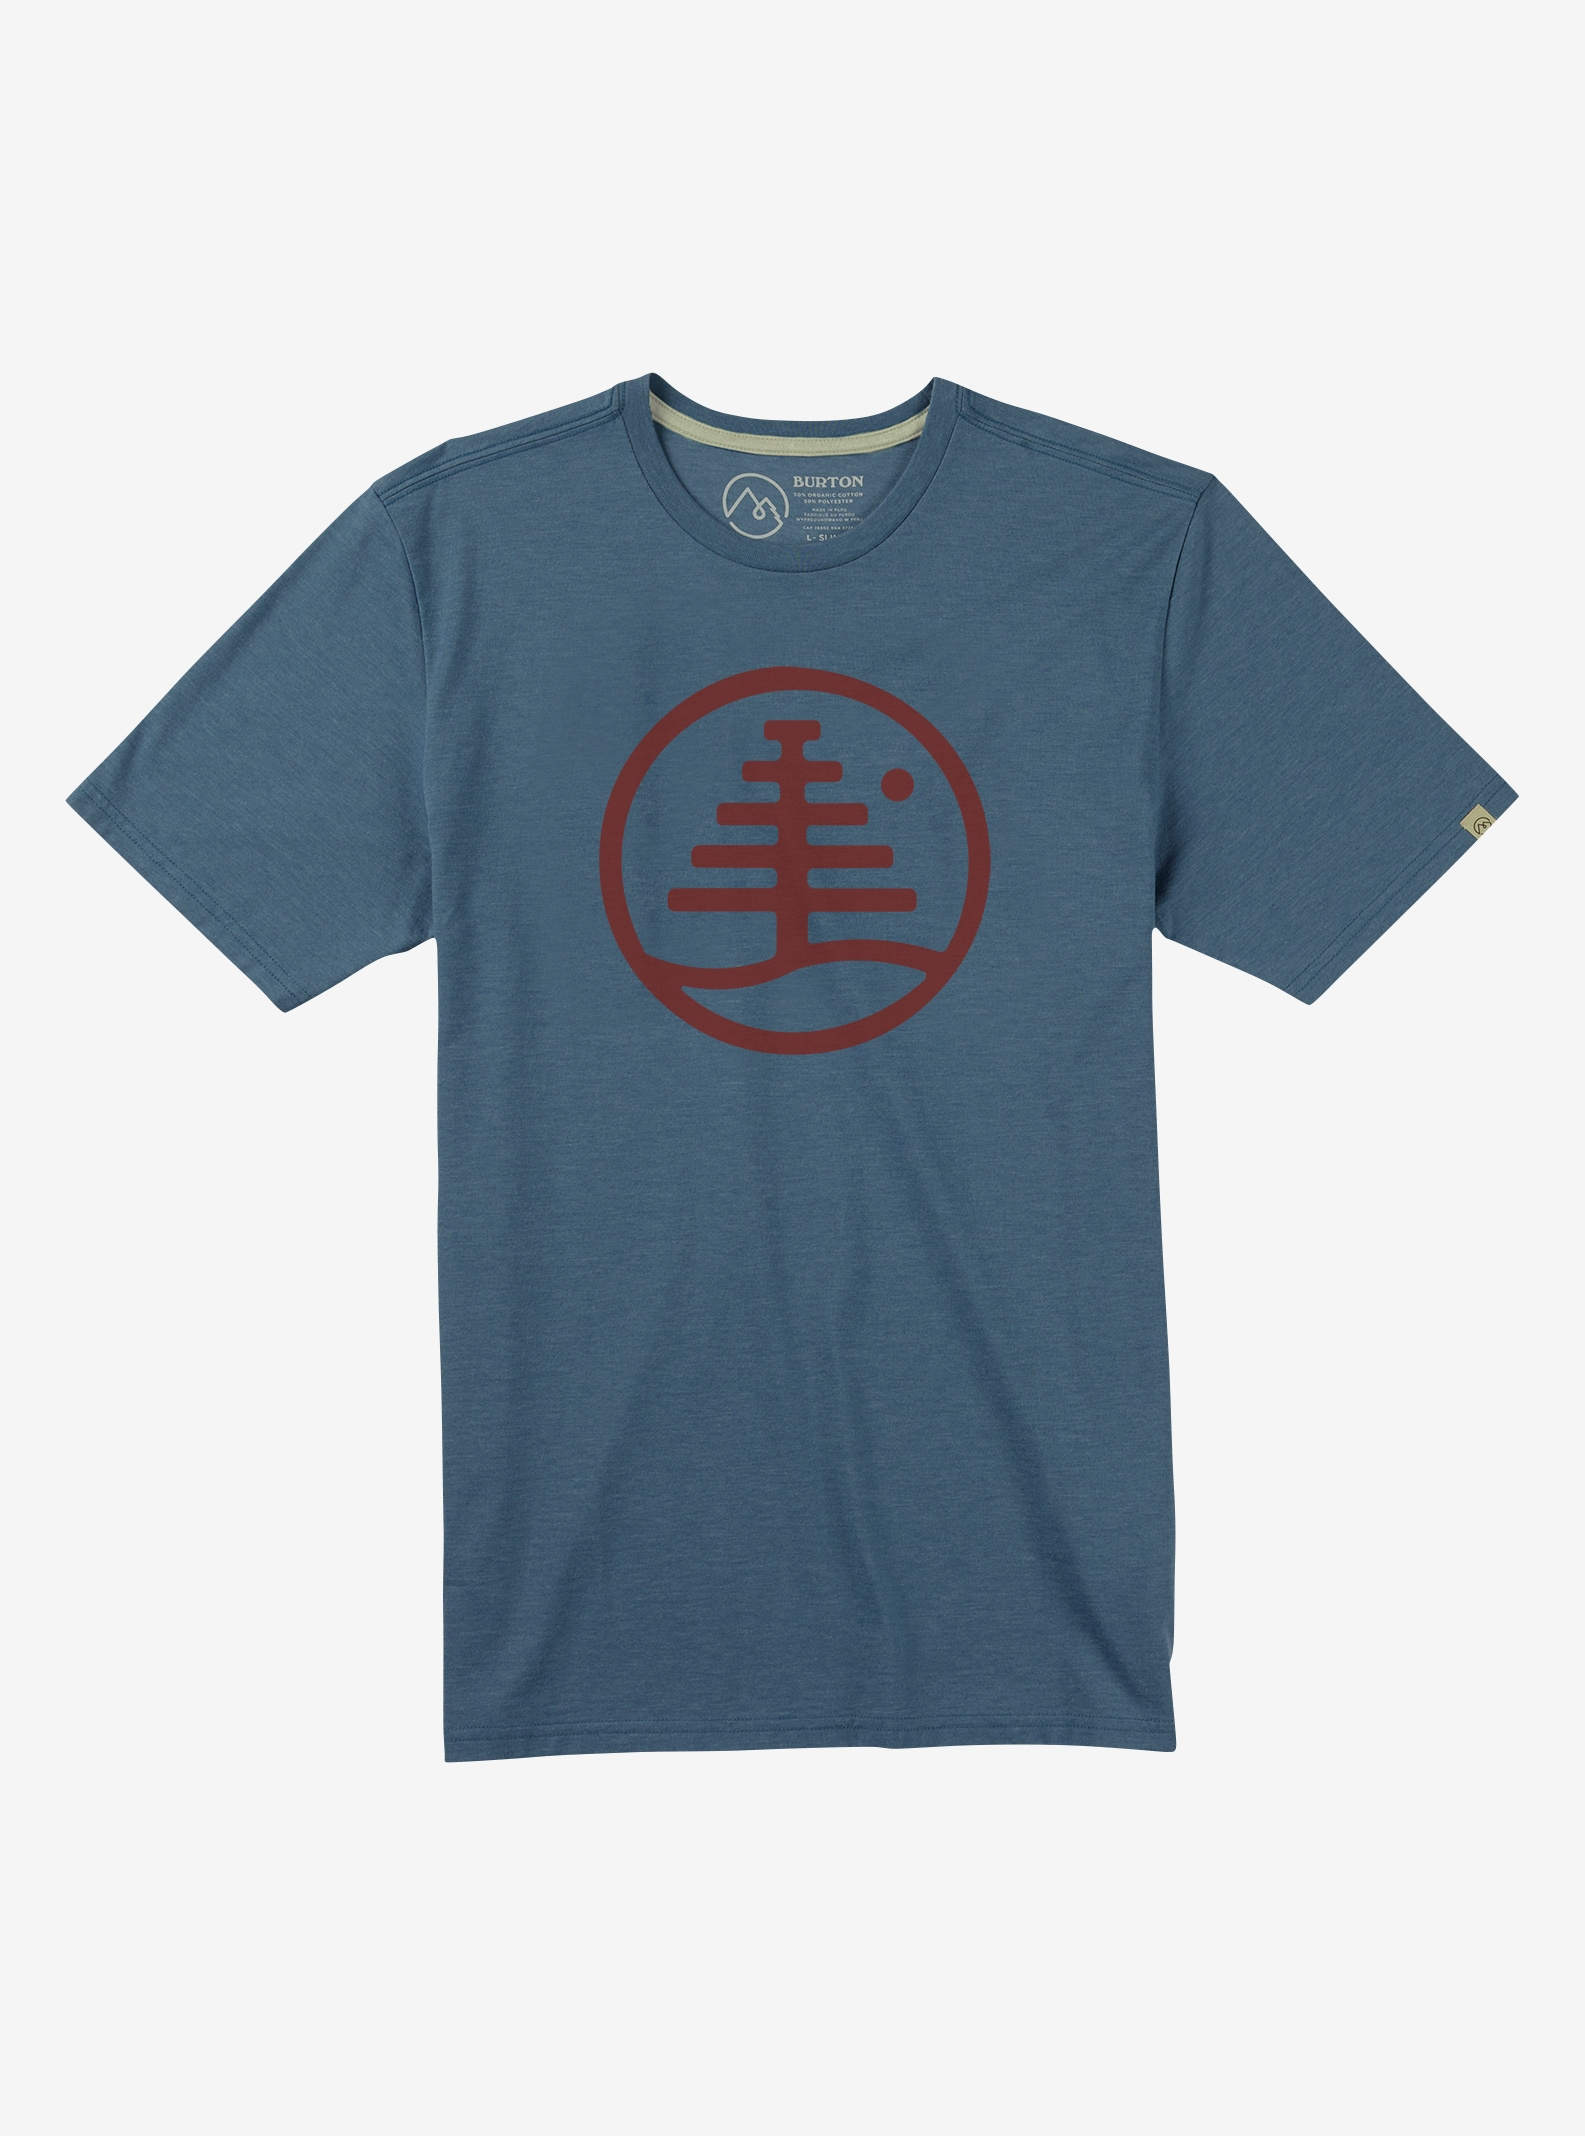 Men's Burton Family Tree Short Sleeve T Shirt shown in LA Sky